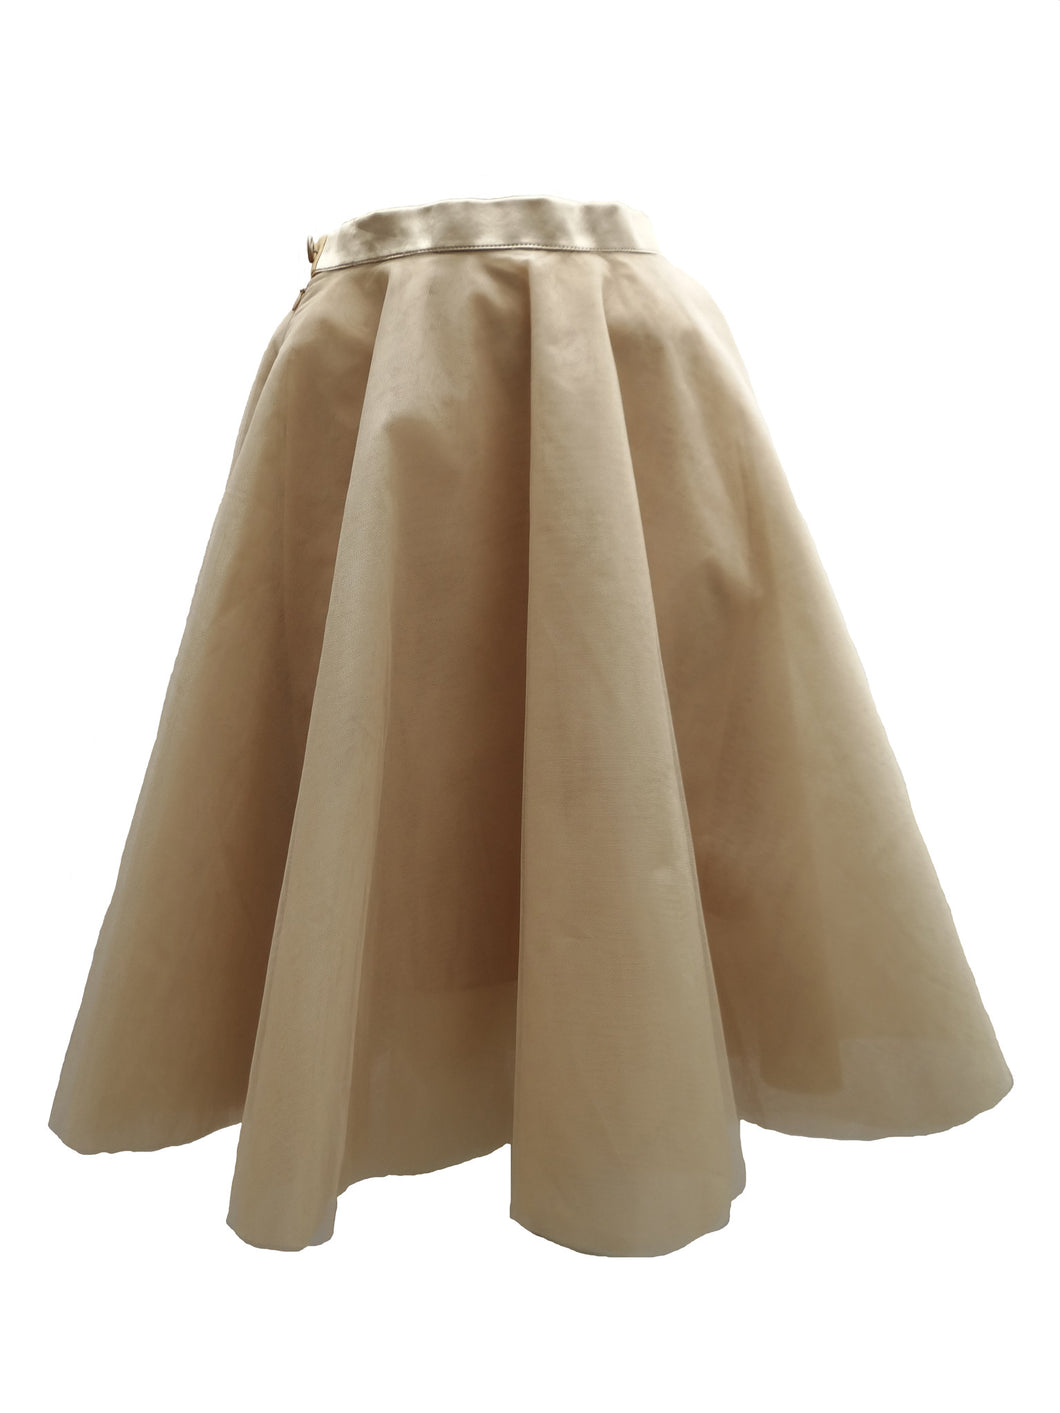 Ballerina Skirt in Ivory Tulle UK10